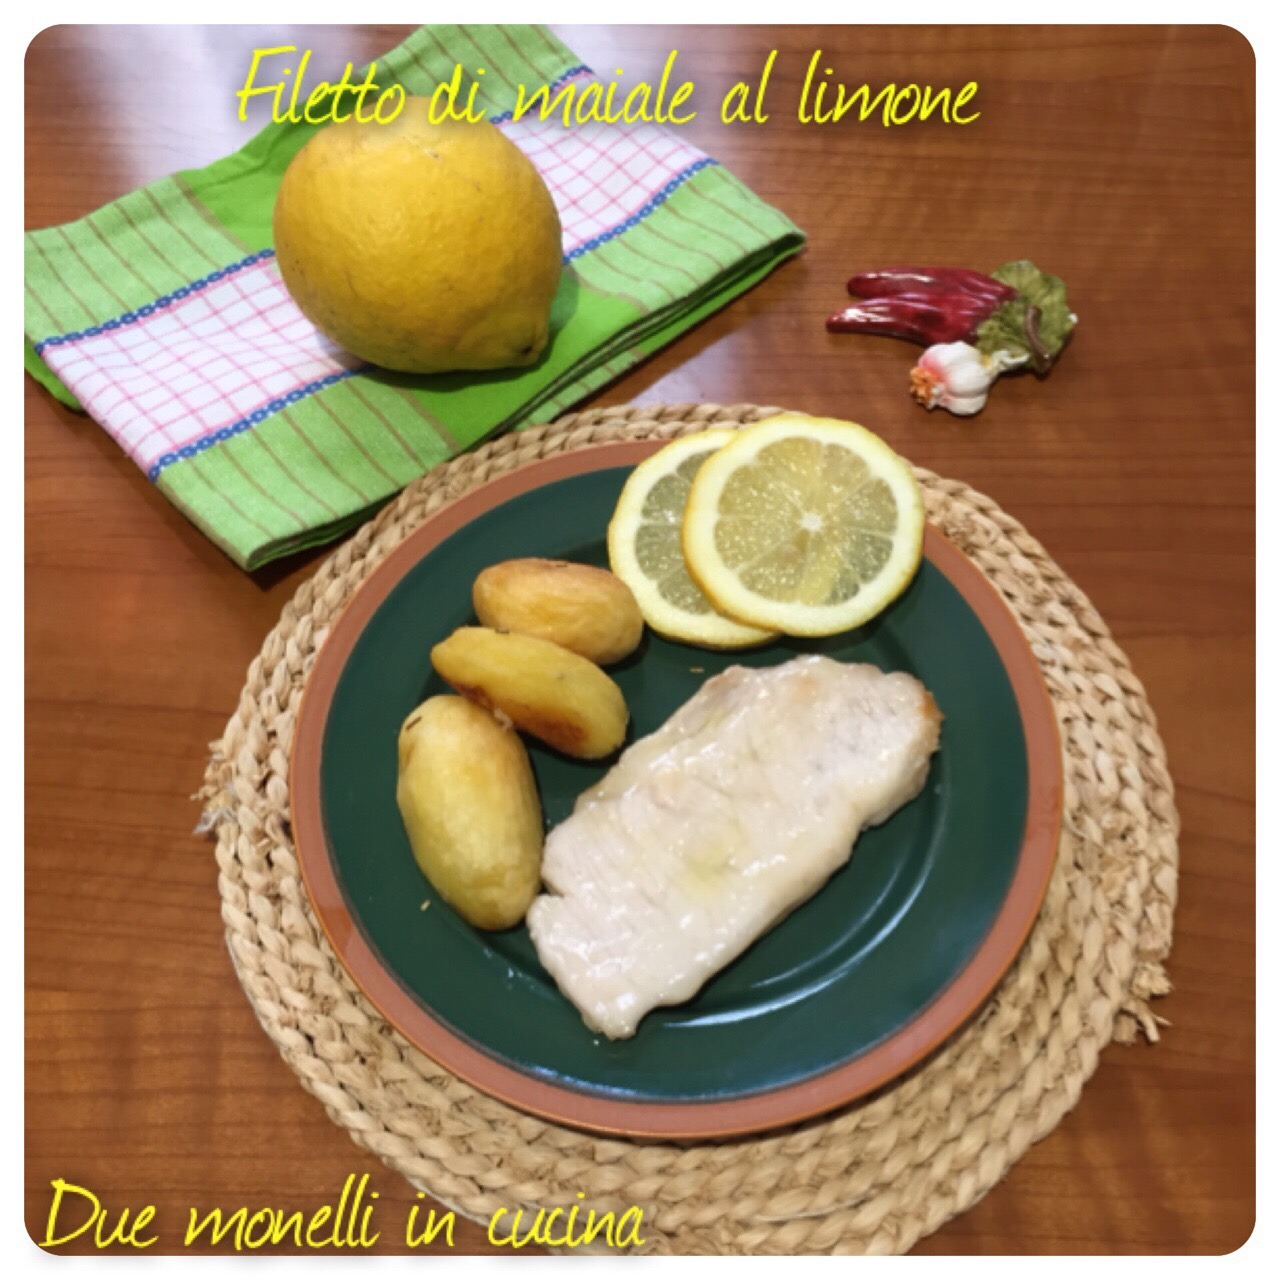 Filetto di maiale al limone